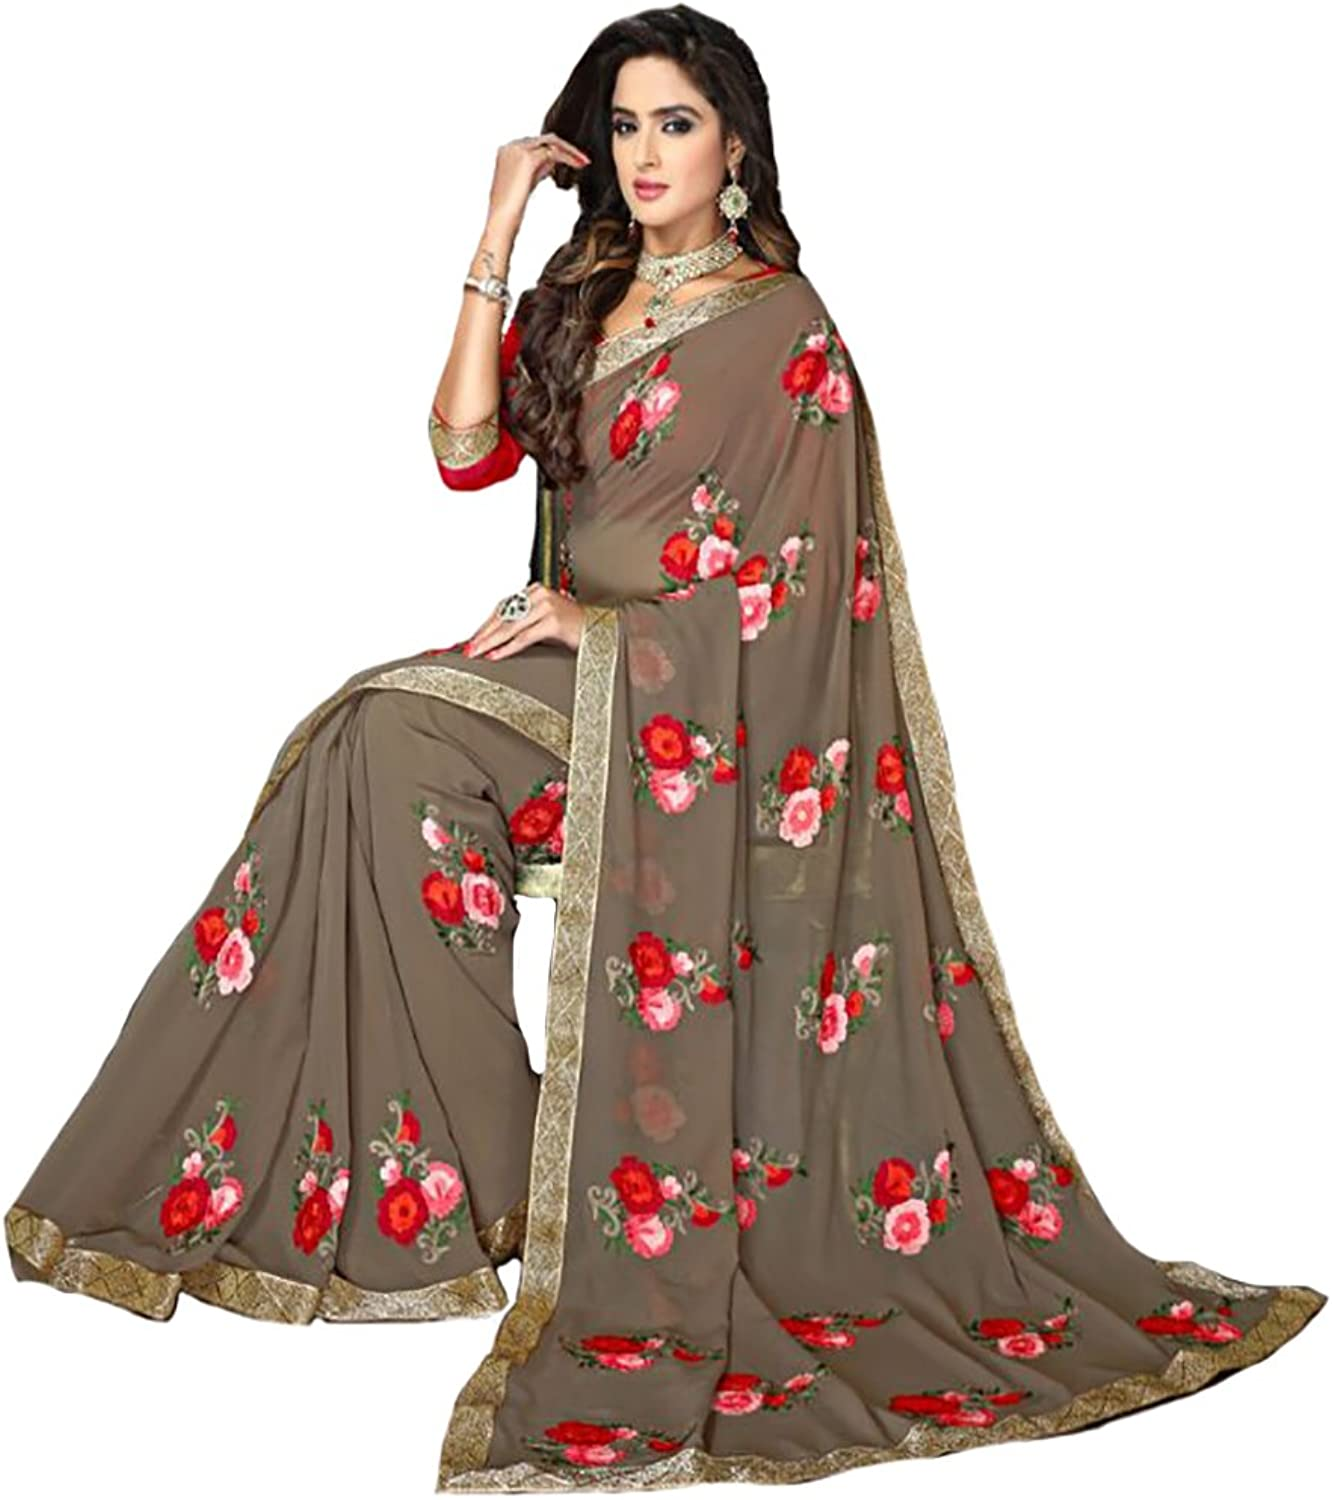 Bollywood Party wear Saree Sari Ceremony Collection Gown Blouse Petticoat